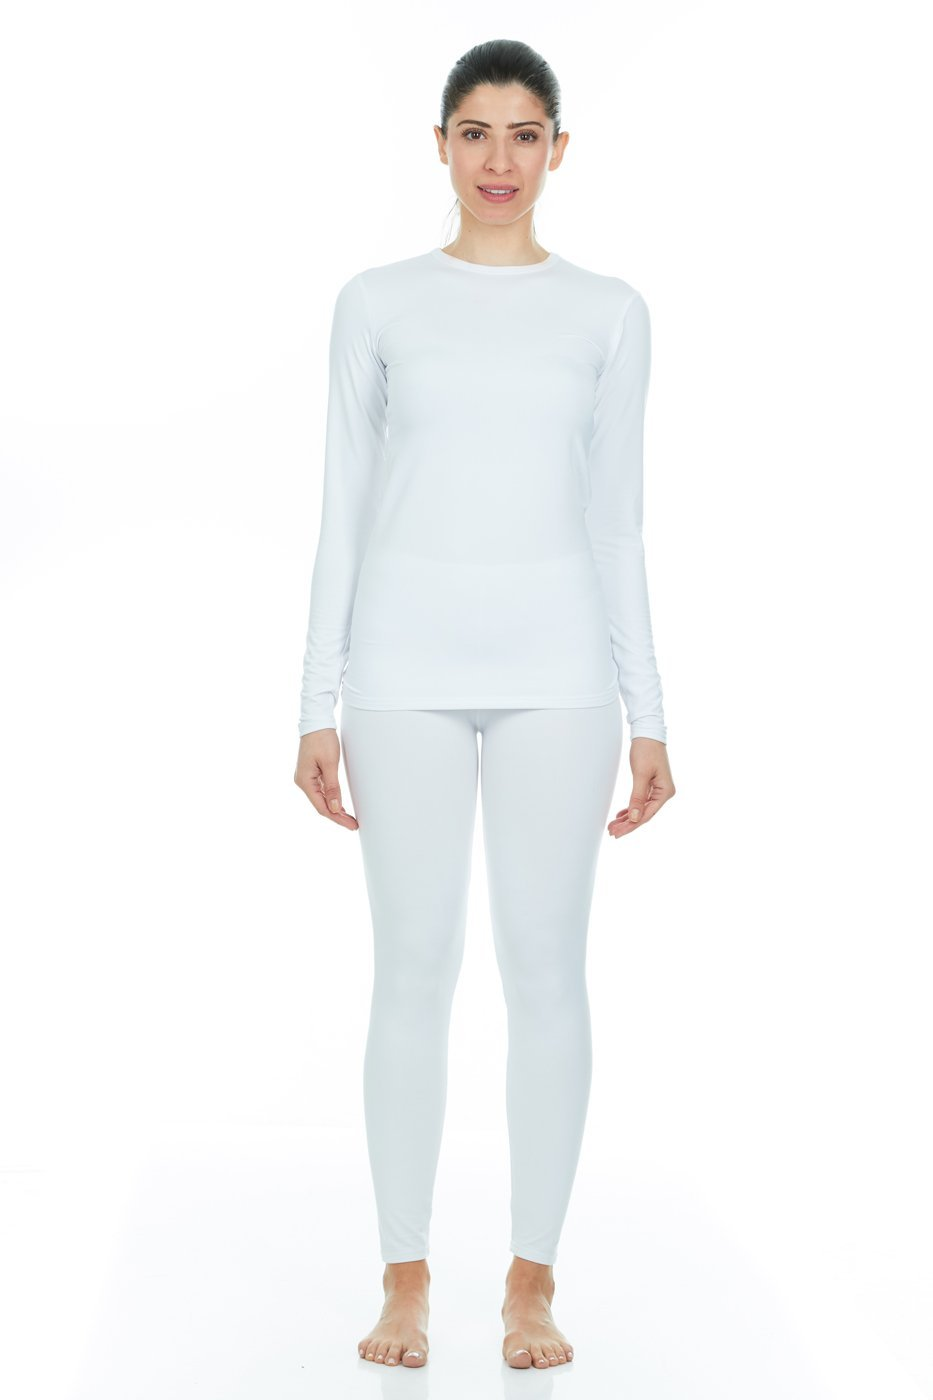 37c4e7b8 Thermajane Women's Ultra Soft Thermal Underwear Long Johns Set with Fleece  Lined (X-Large, White): Amazon.in: Beauty